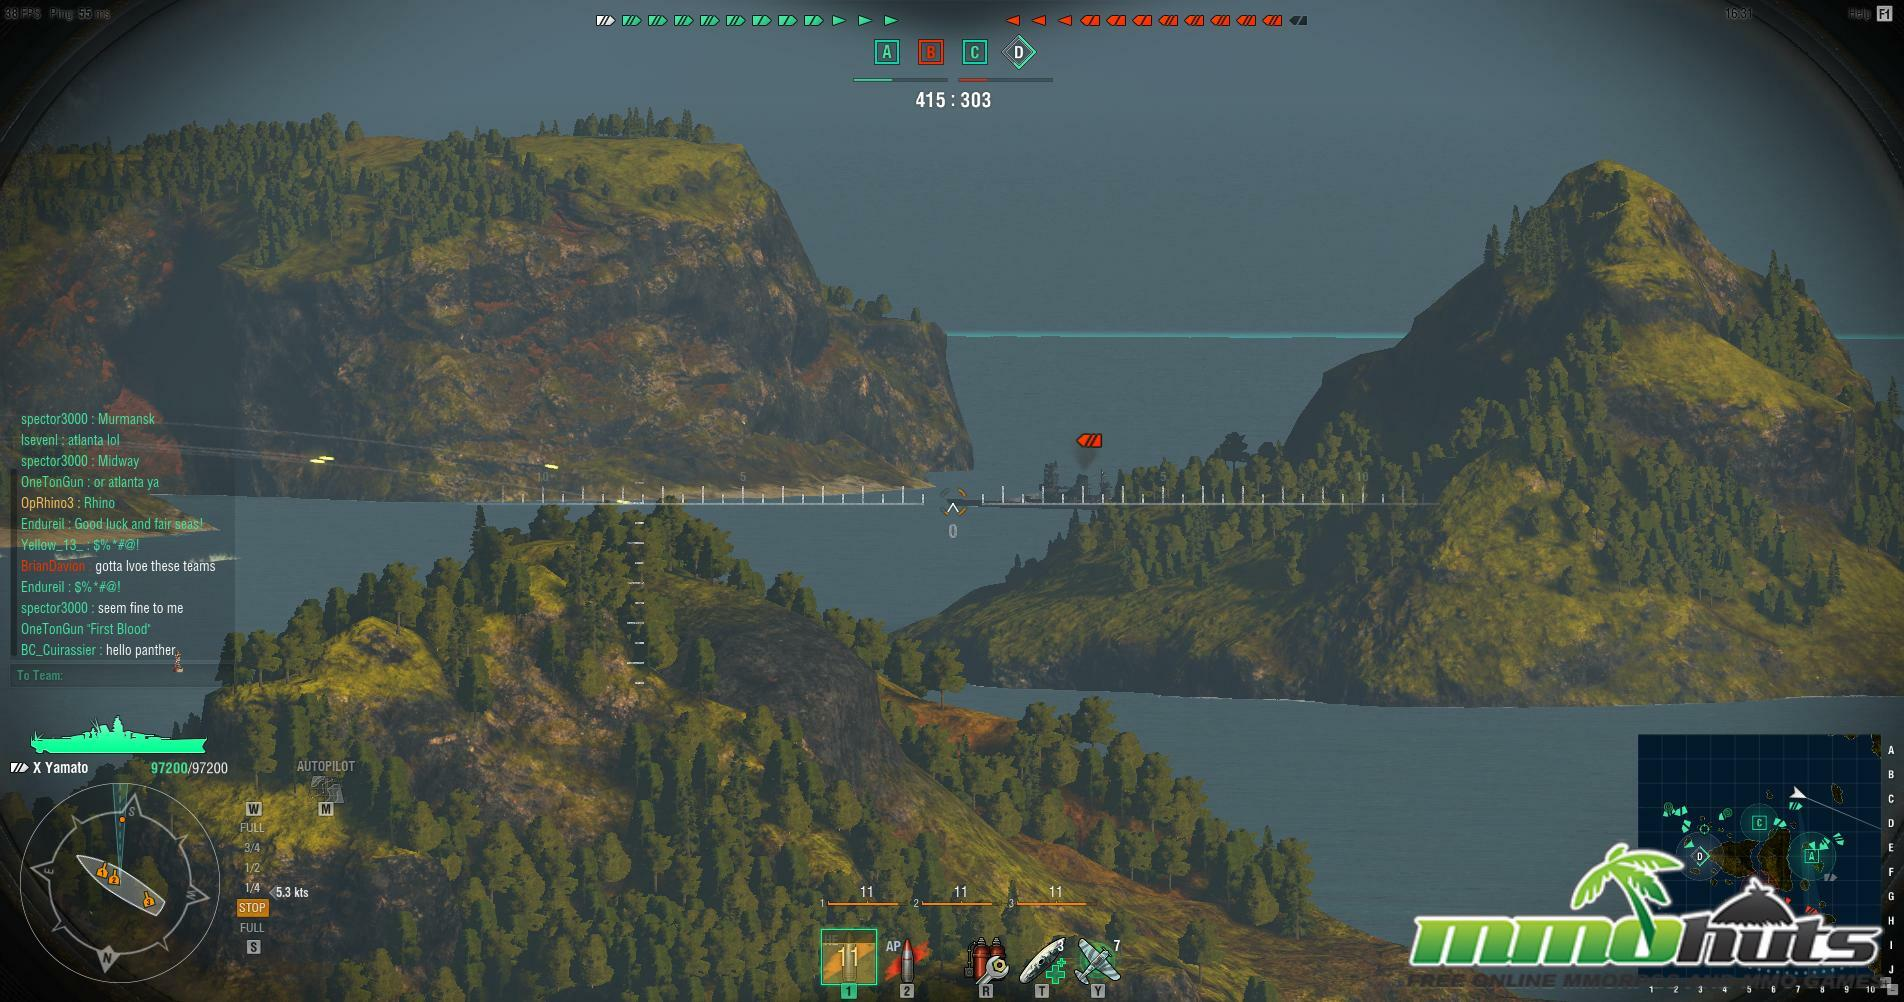 worldofwarships 2015-10-01 16-32-05-70